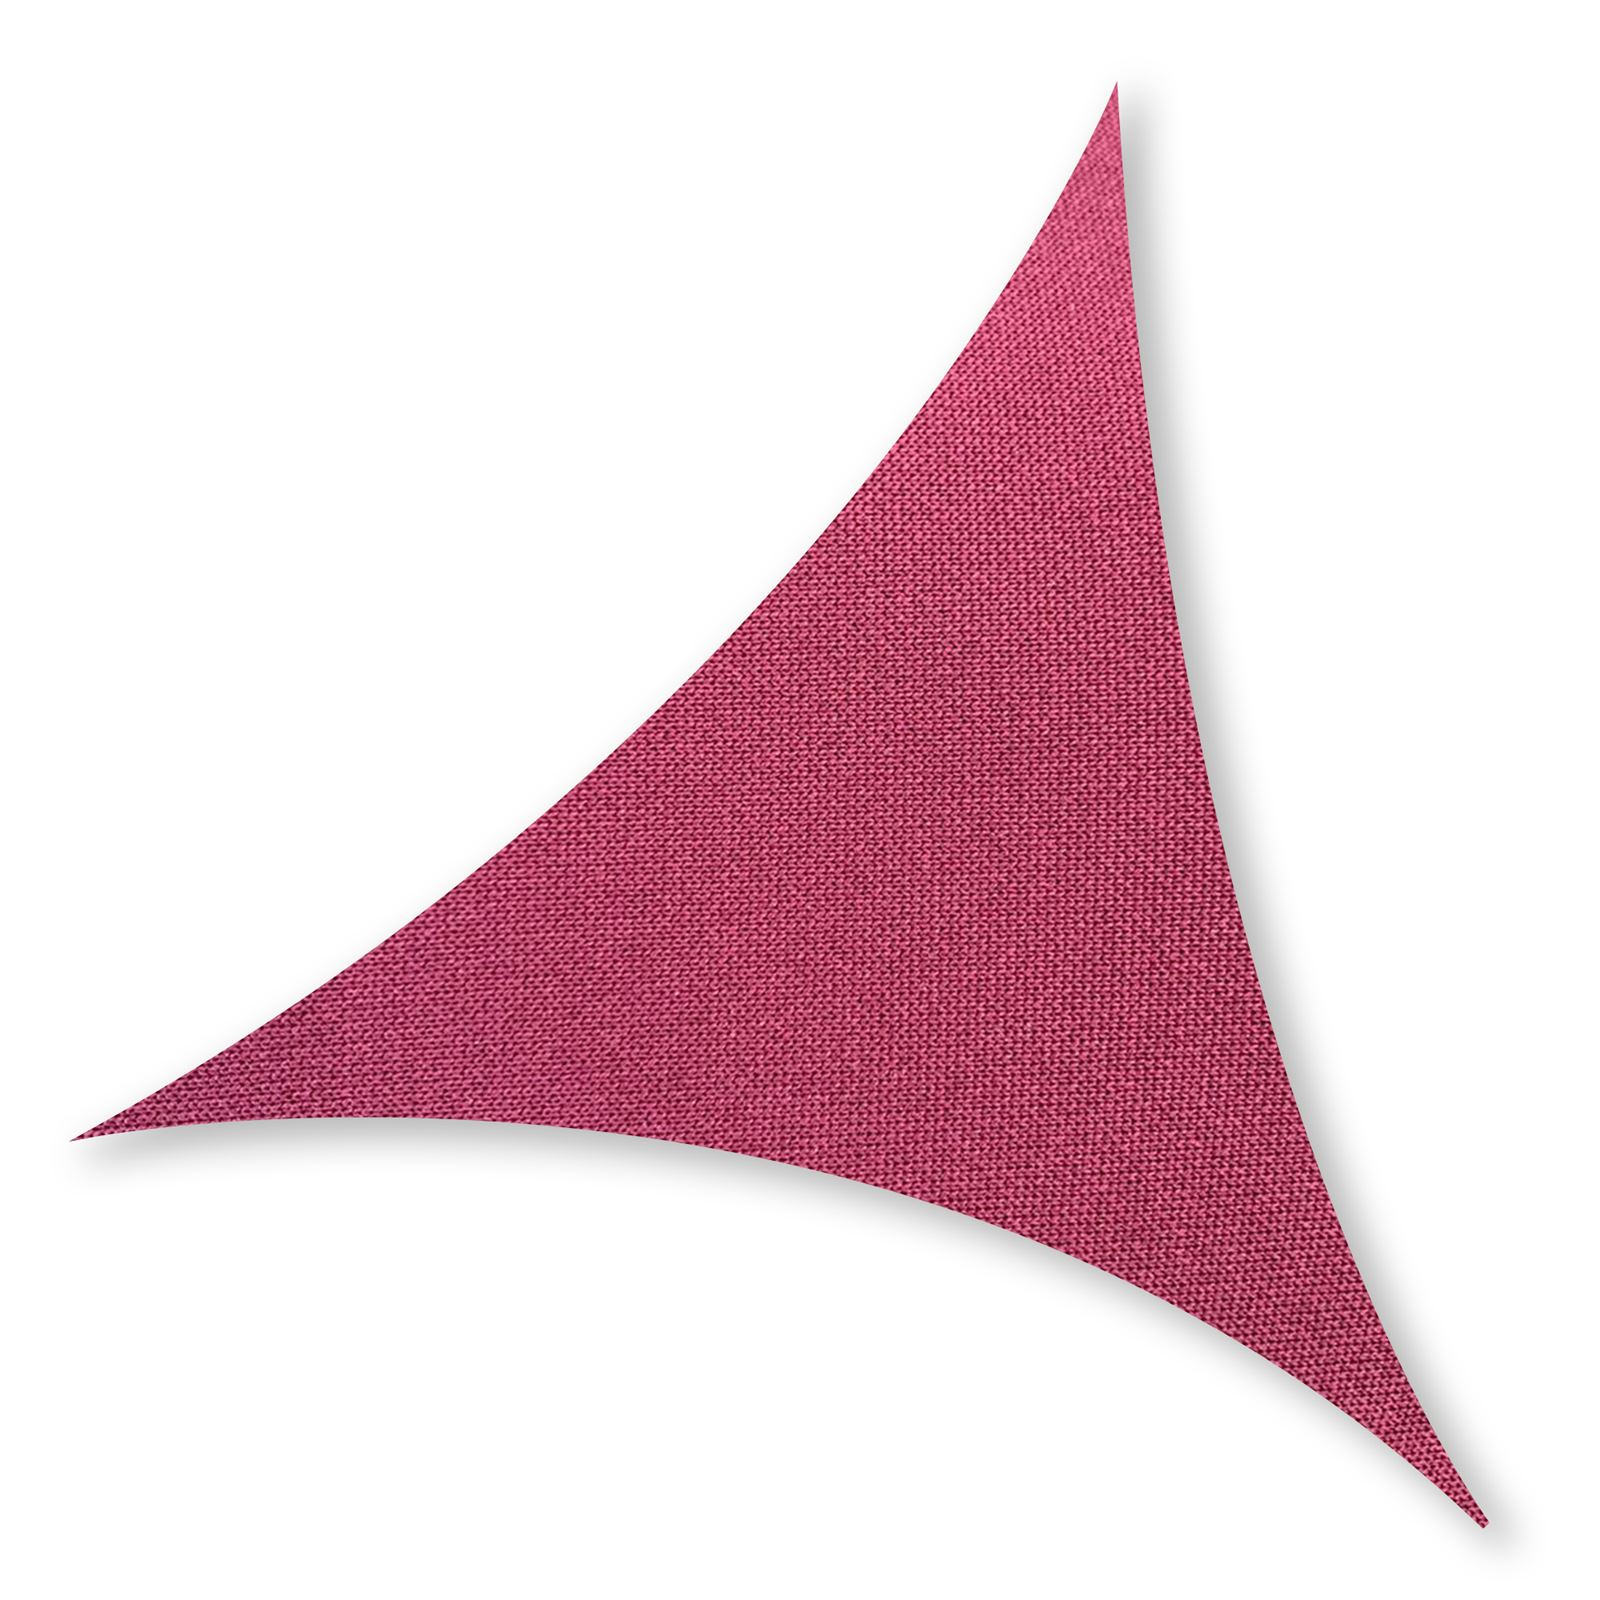 TRIANGLE L 5,00 x 5,00m Sun Shade Sail Bordeaux